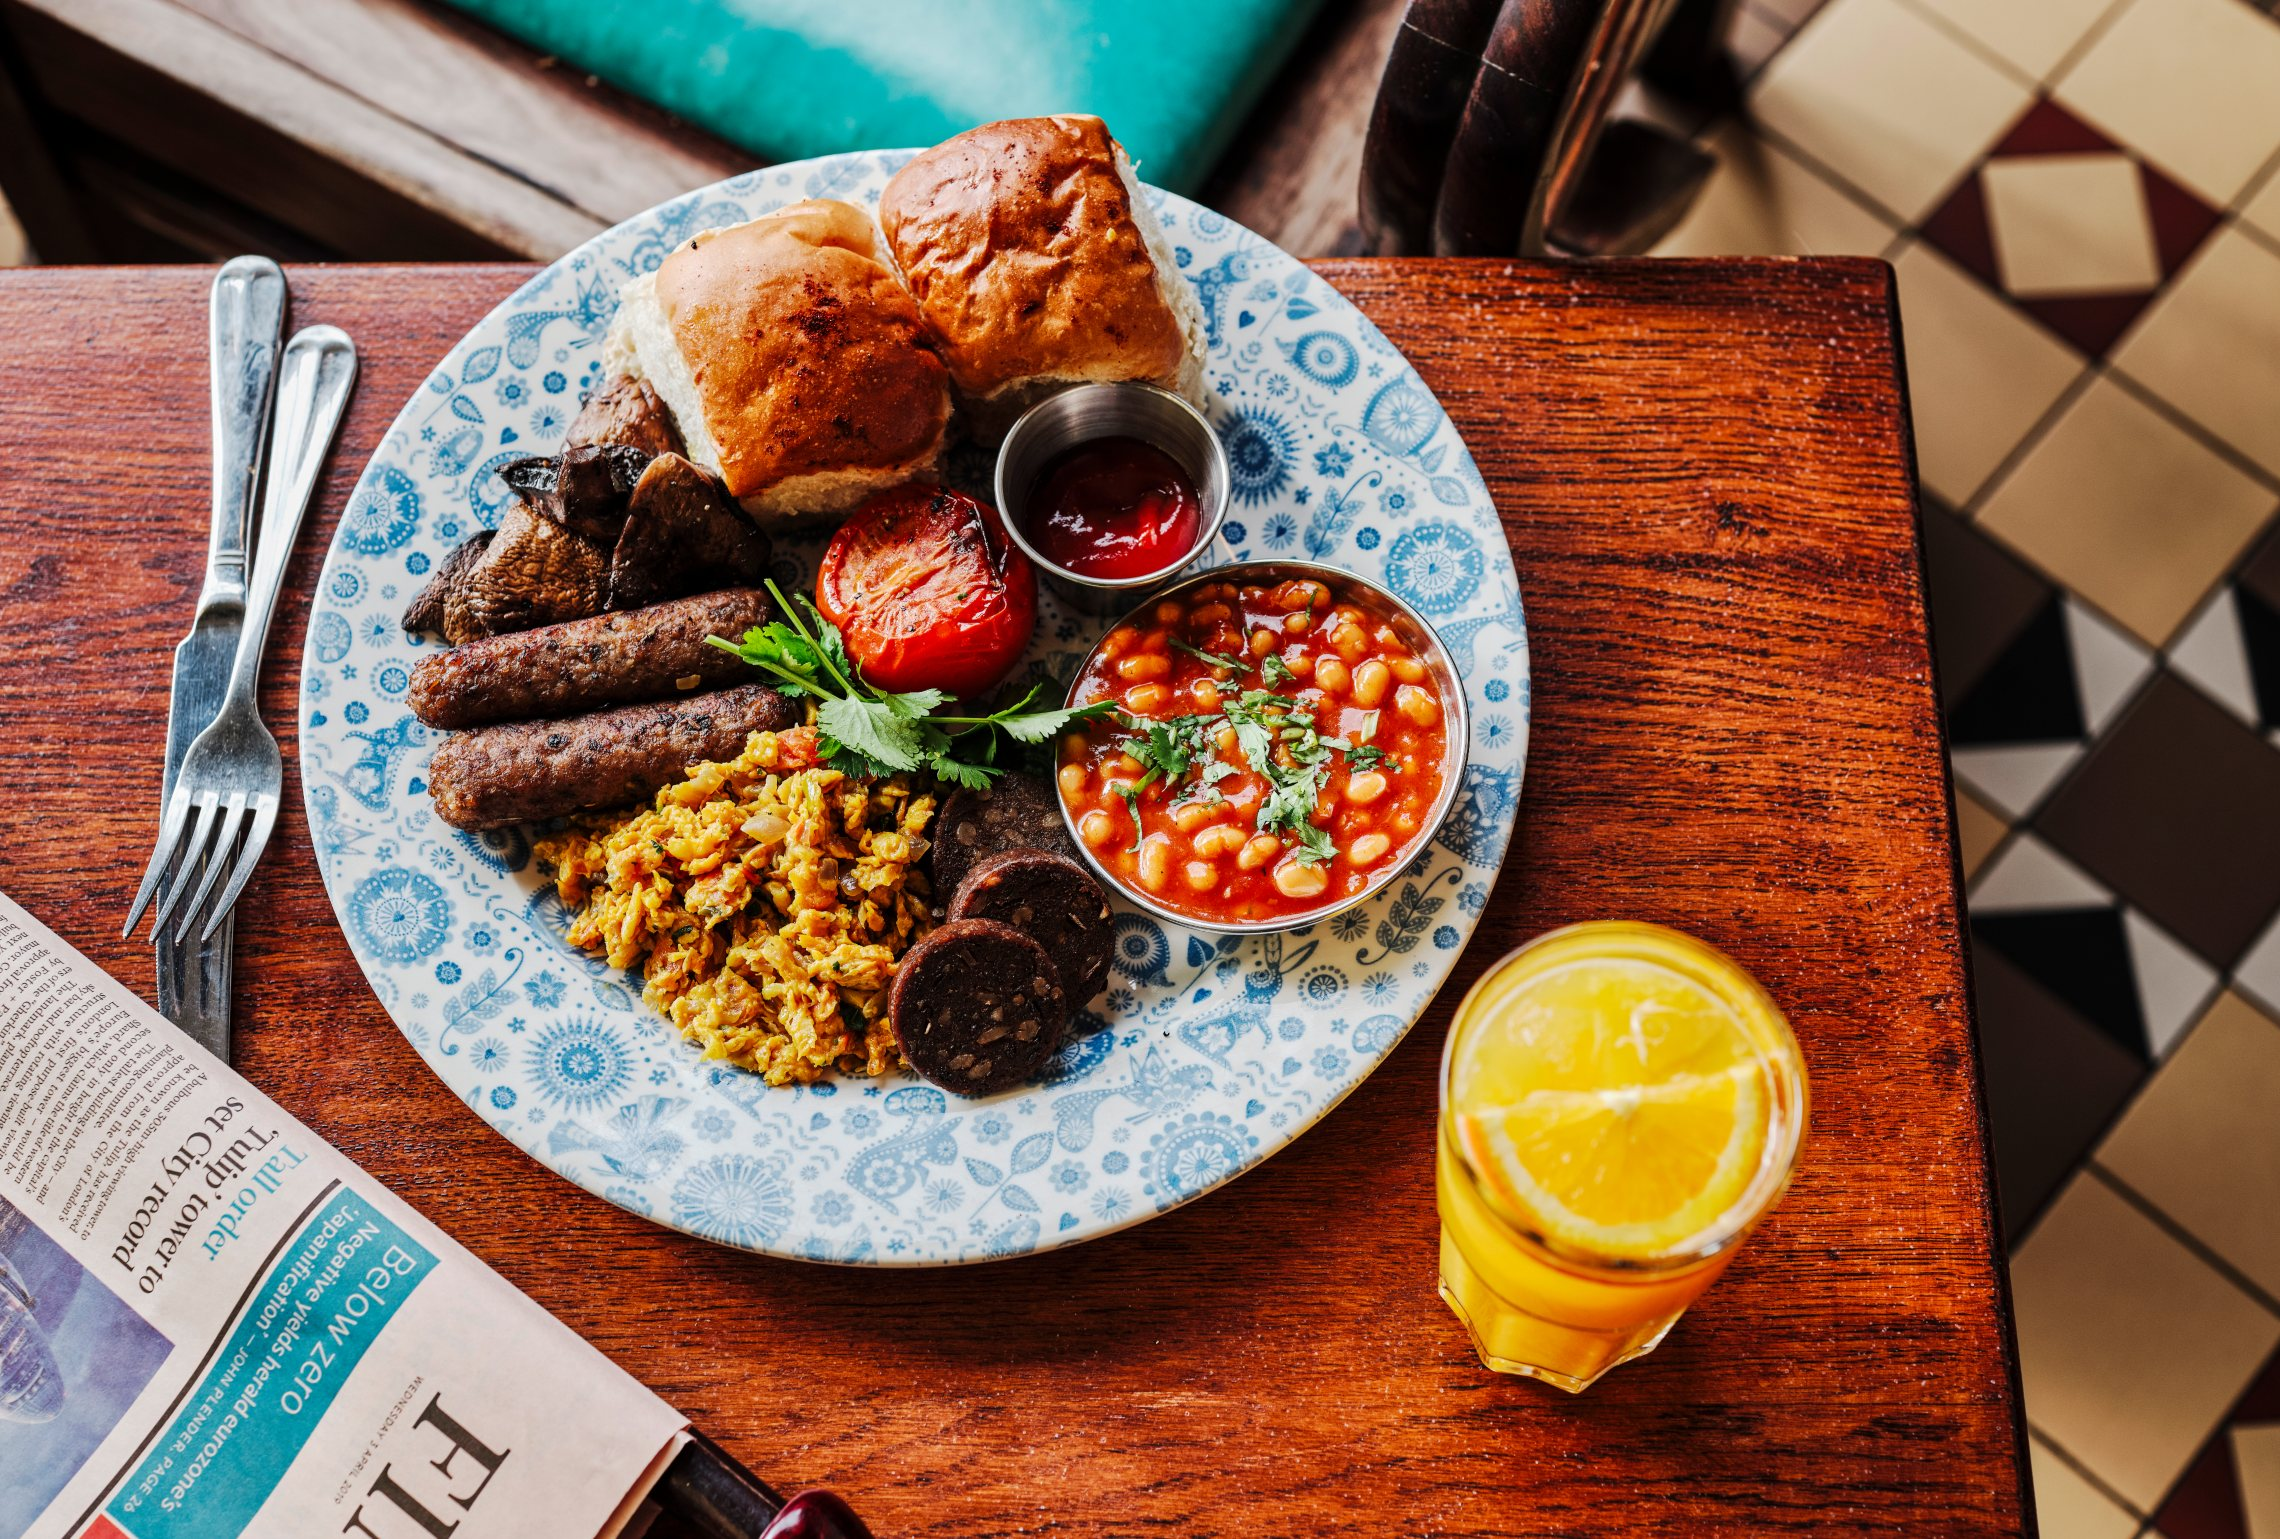 Dishoom's vegan Bombay breakfast next to a glass of orange juice and a Financial Times newspaper